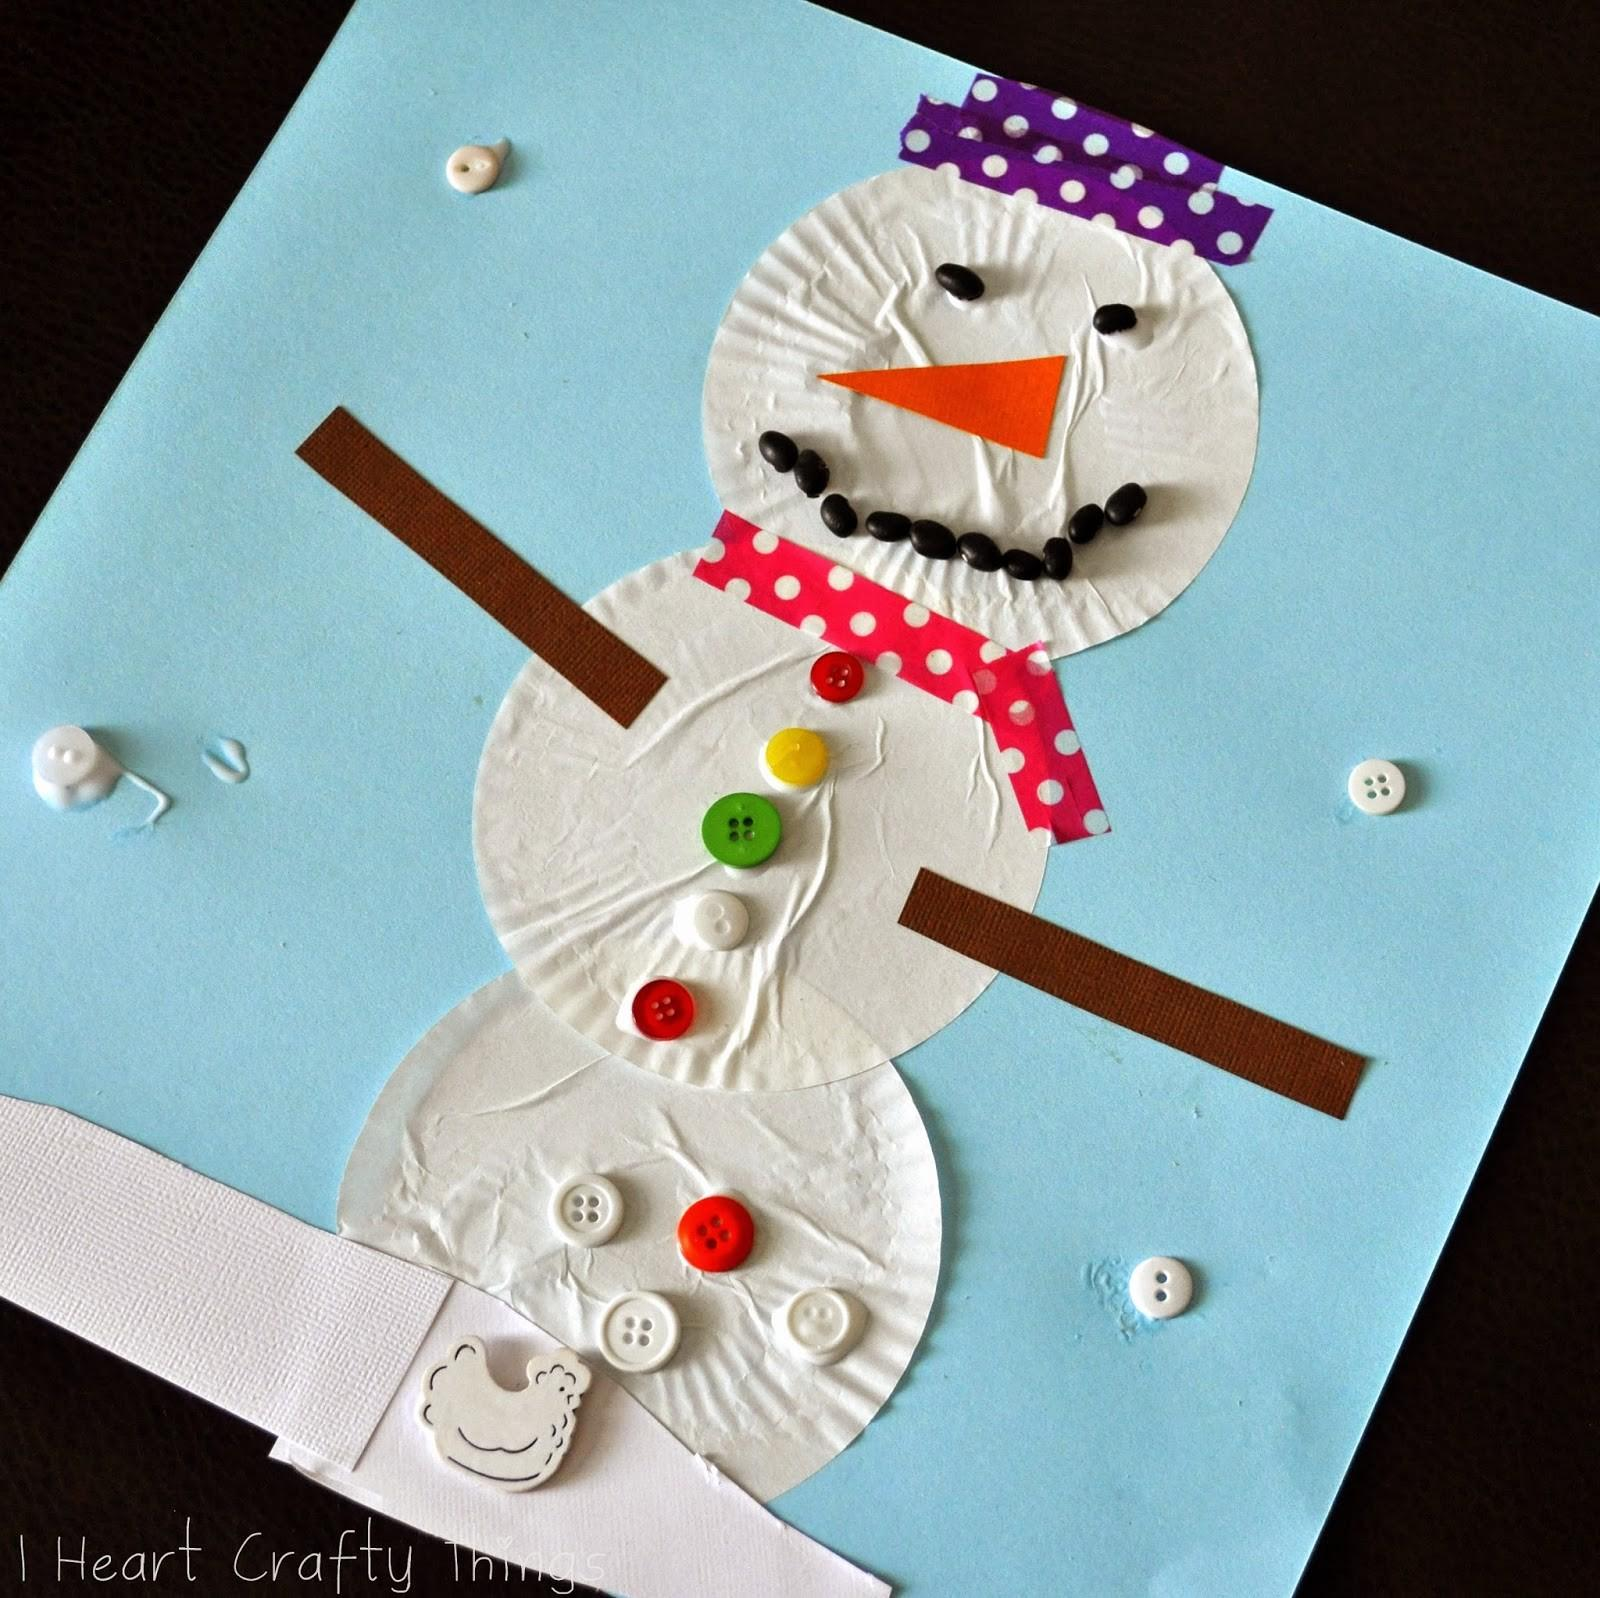 Heart Crafty Things Cupcake Liner Snowman Craft